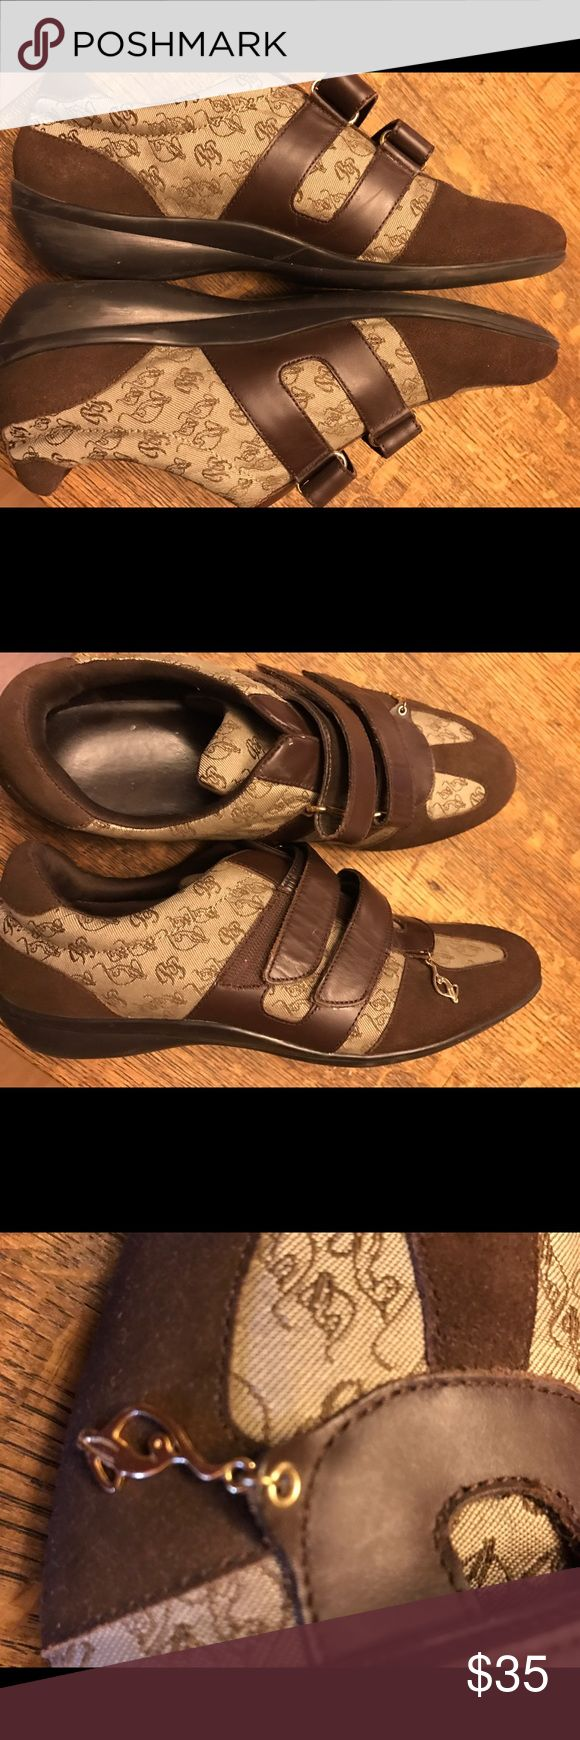 Fabulous Baby Phat Fashion Tennis Shoes 8.5 Like new. No signs of wear. Velcro for easy on & off. No trades at this time. Baby Phat Shoes Sneakers